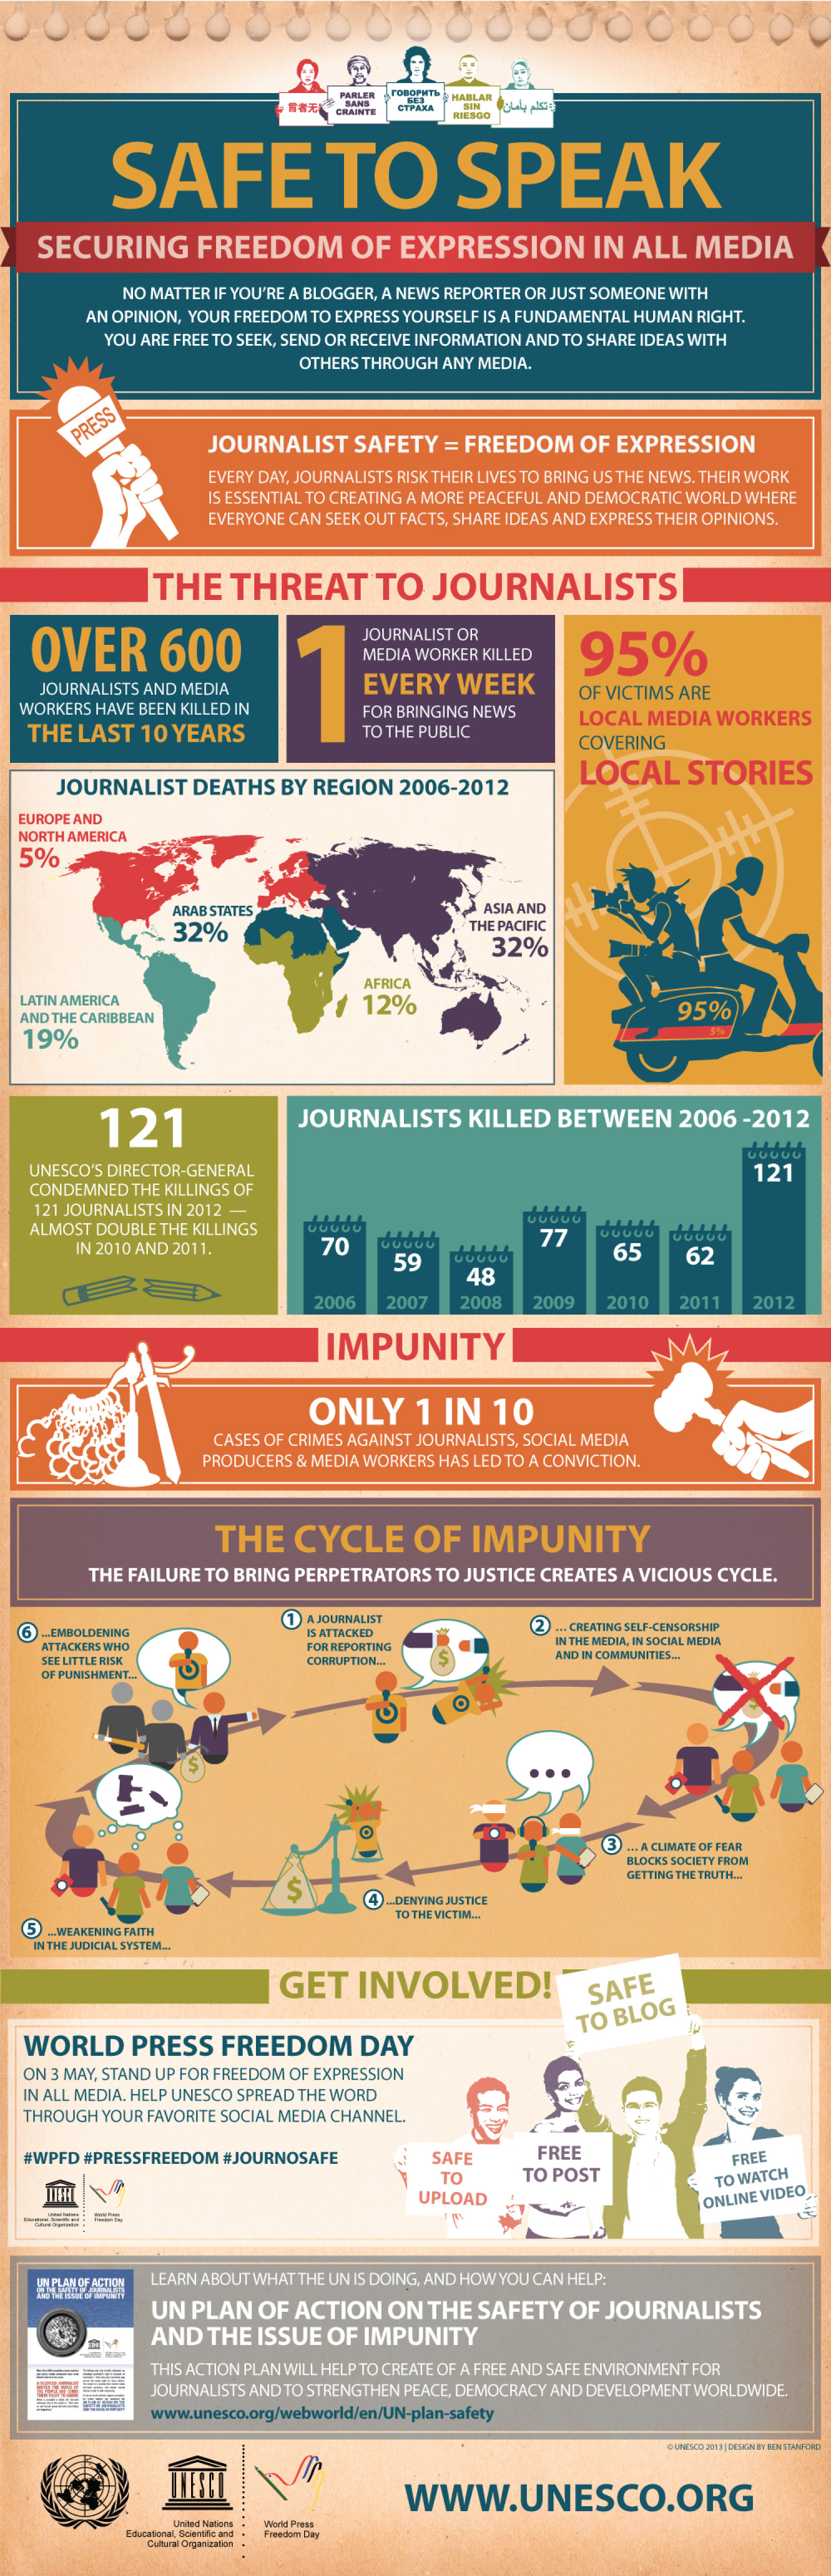 Crime & Unpunishment: Why journalists fear for their safety Infographic